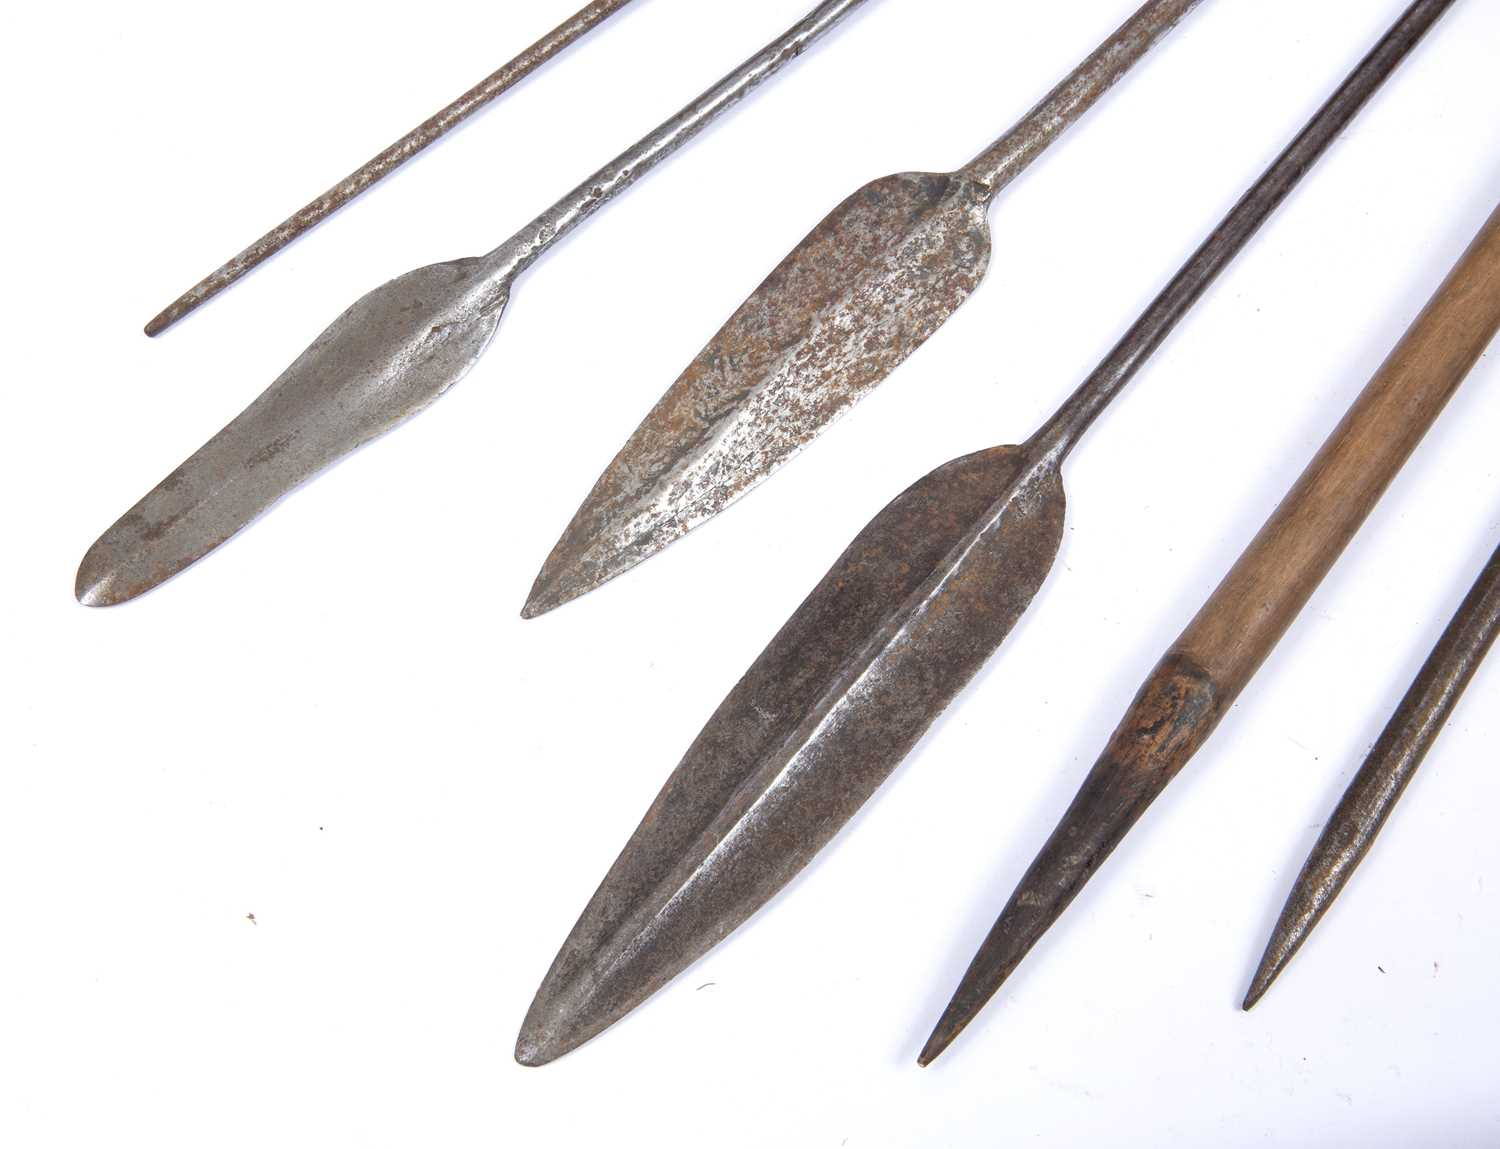 A set of three Masai spears, with iron blades together with a woven basket work Turkana container ( - Image 2 of 2